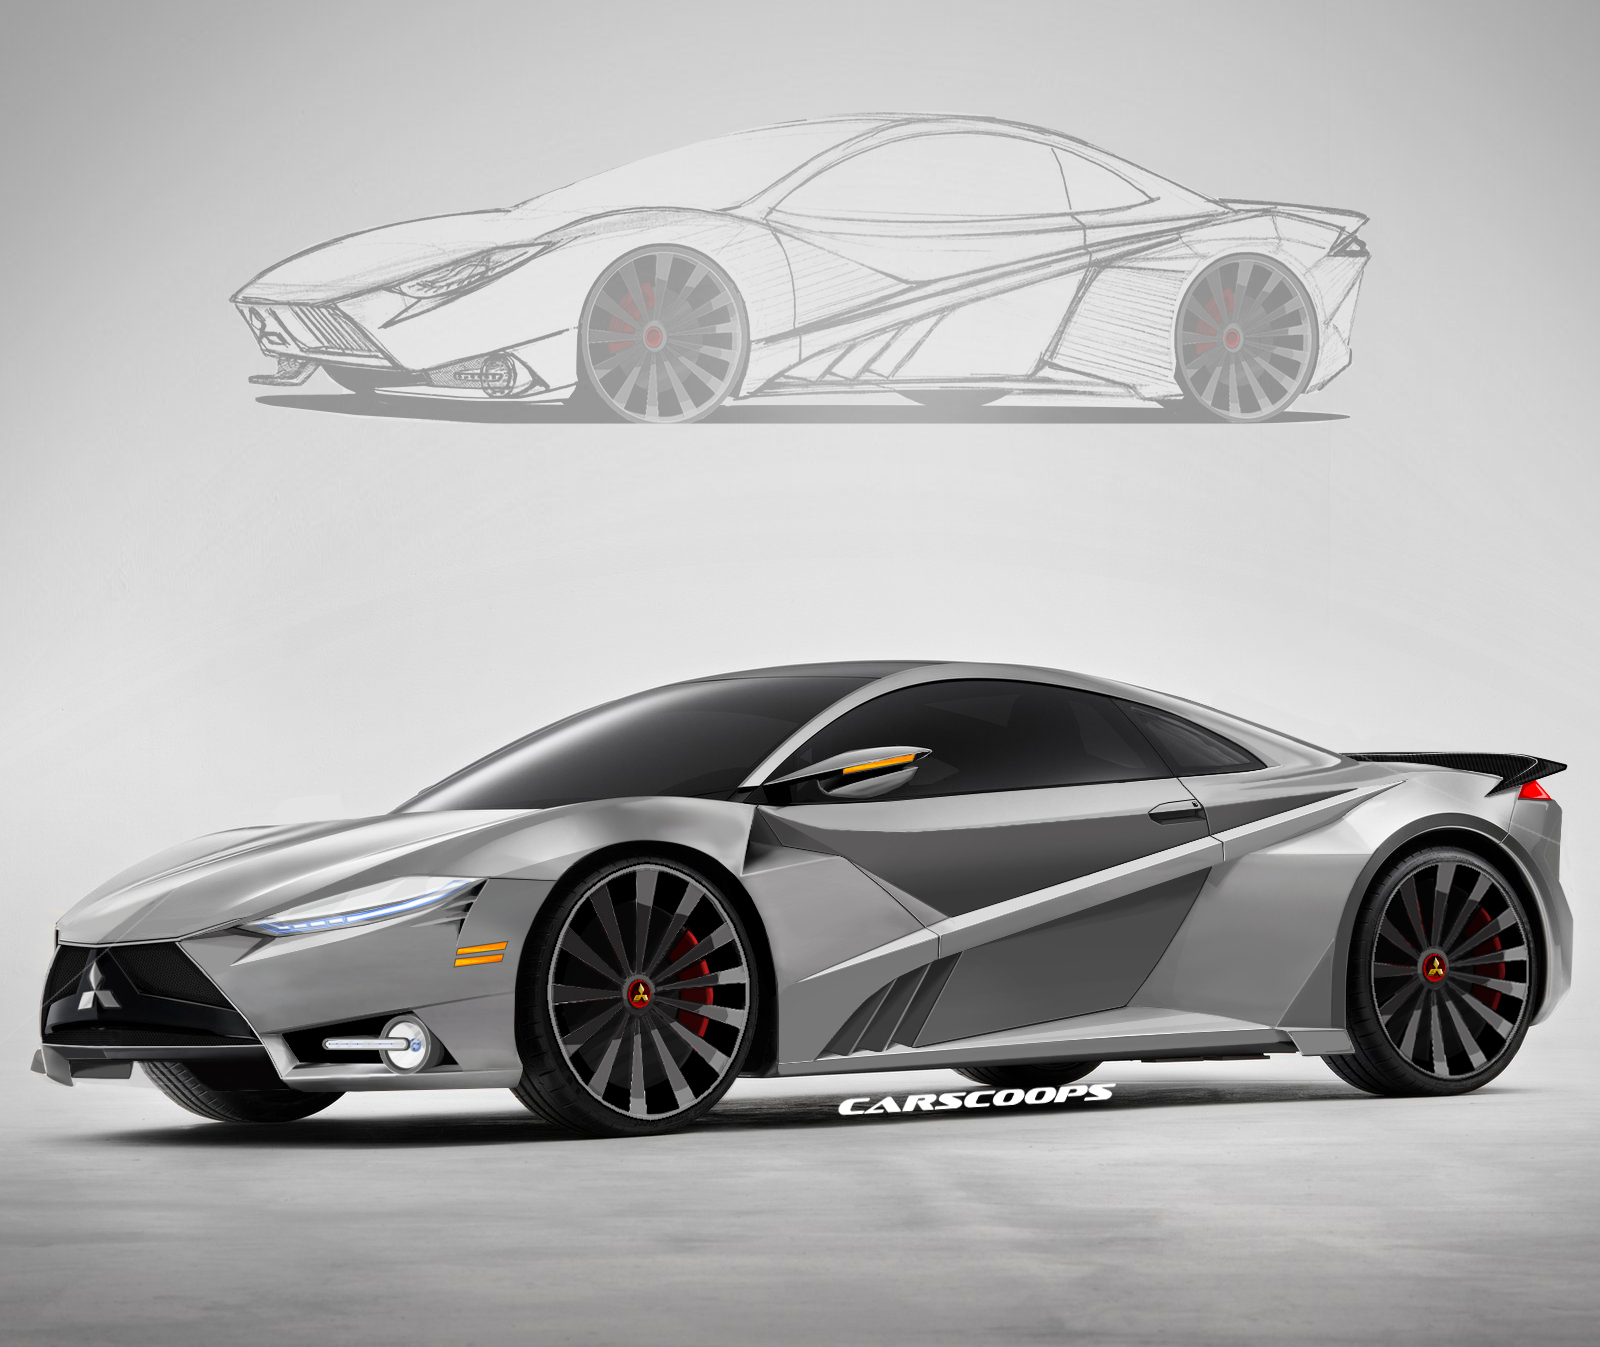 New Mitsubishi 3000GT Concept Rendered From 2016 Acura NSX